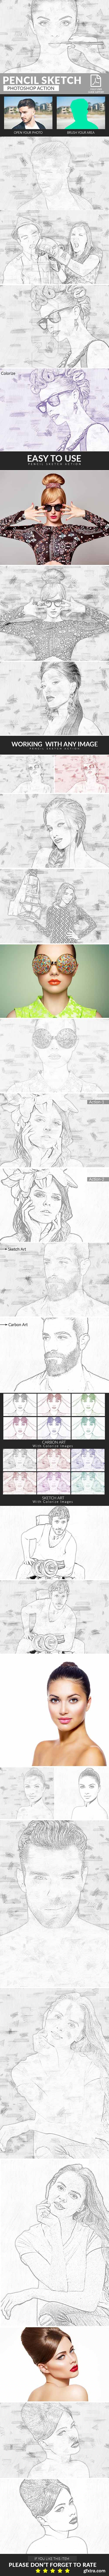 GraphicRiver - Pencil Sketch Photoshop Action 21667407